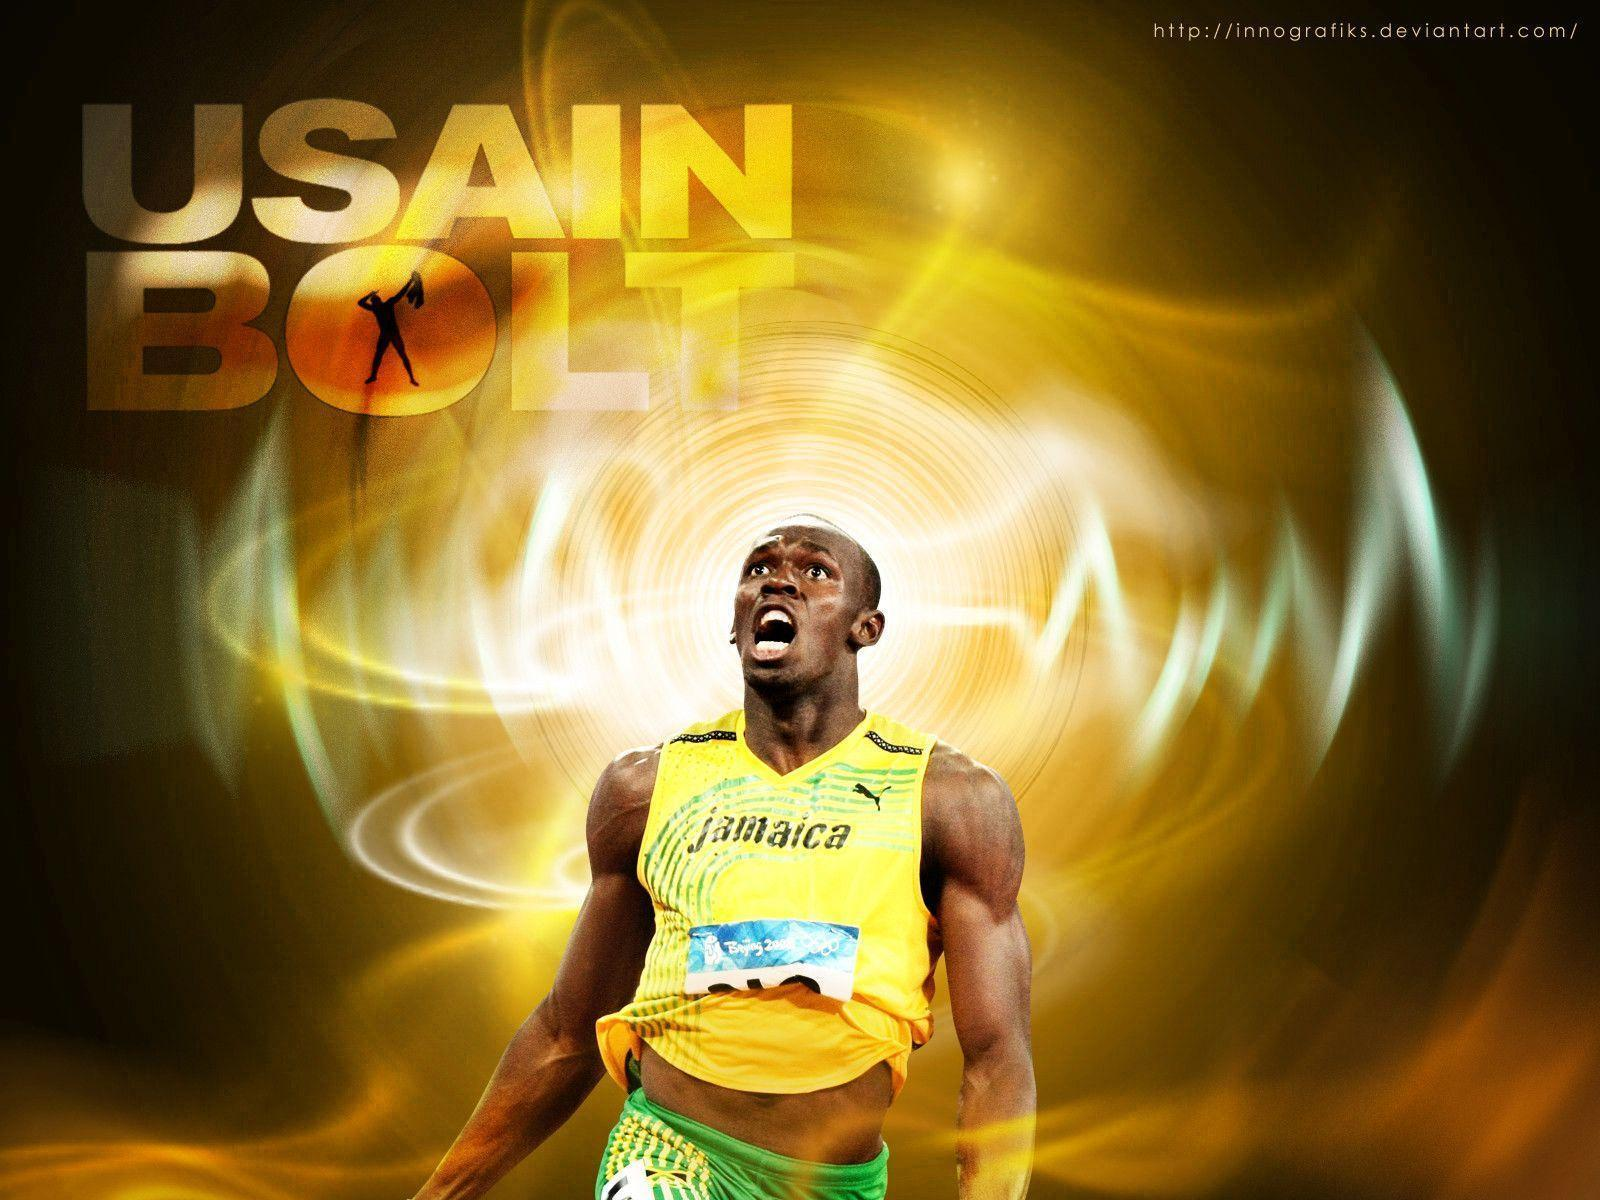 Fondos de pantalla de Usain Bolt | Wallpapers de Usain Bolt ...